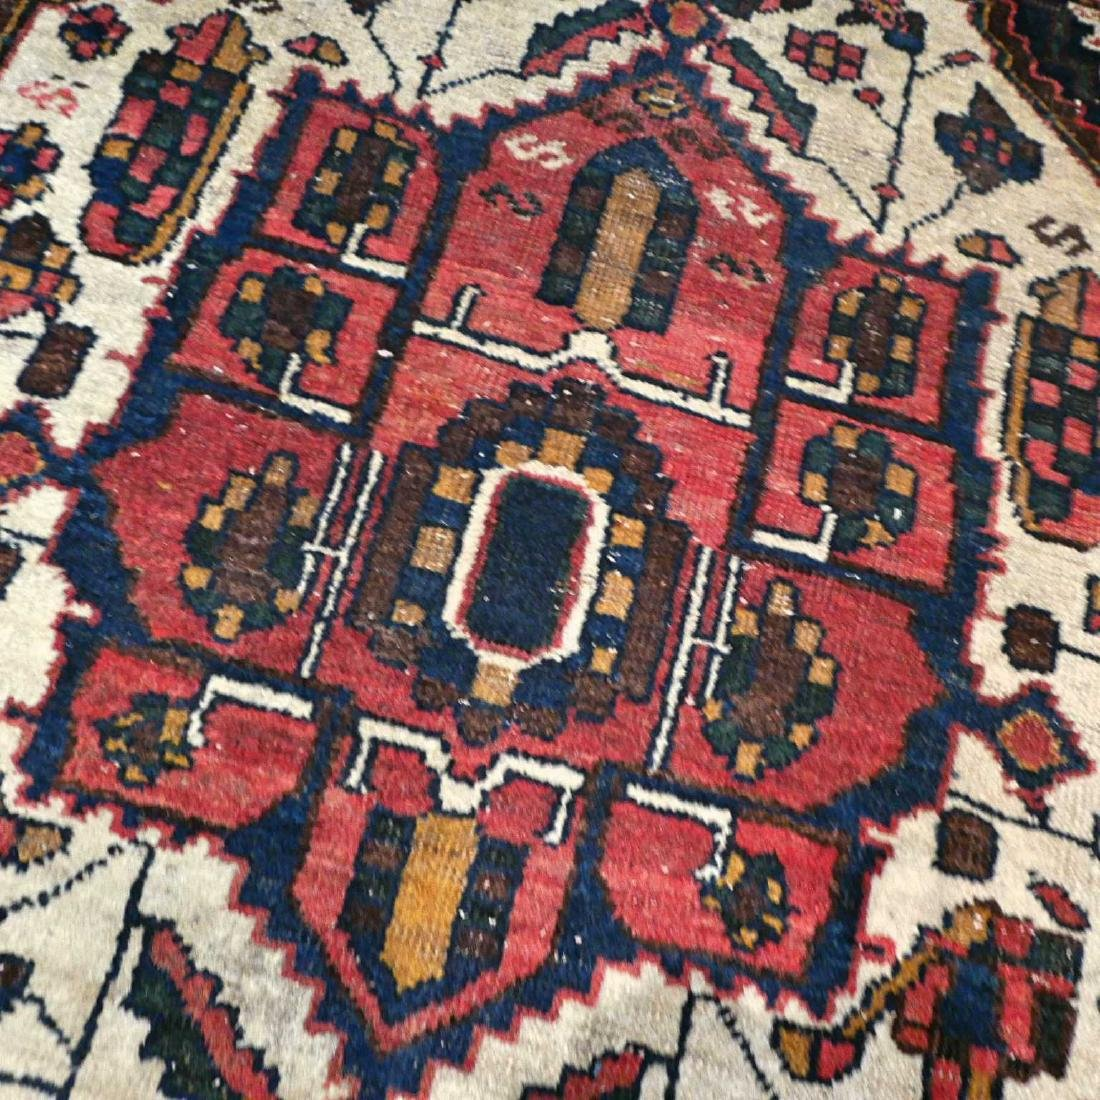 Antique Persian Bakhtiar Wool Hand Knotted Rug 6.3x4.2 - 9